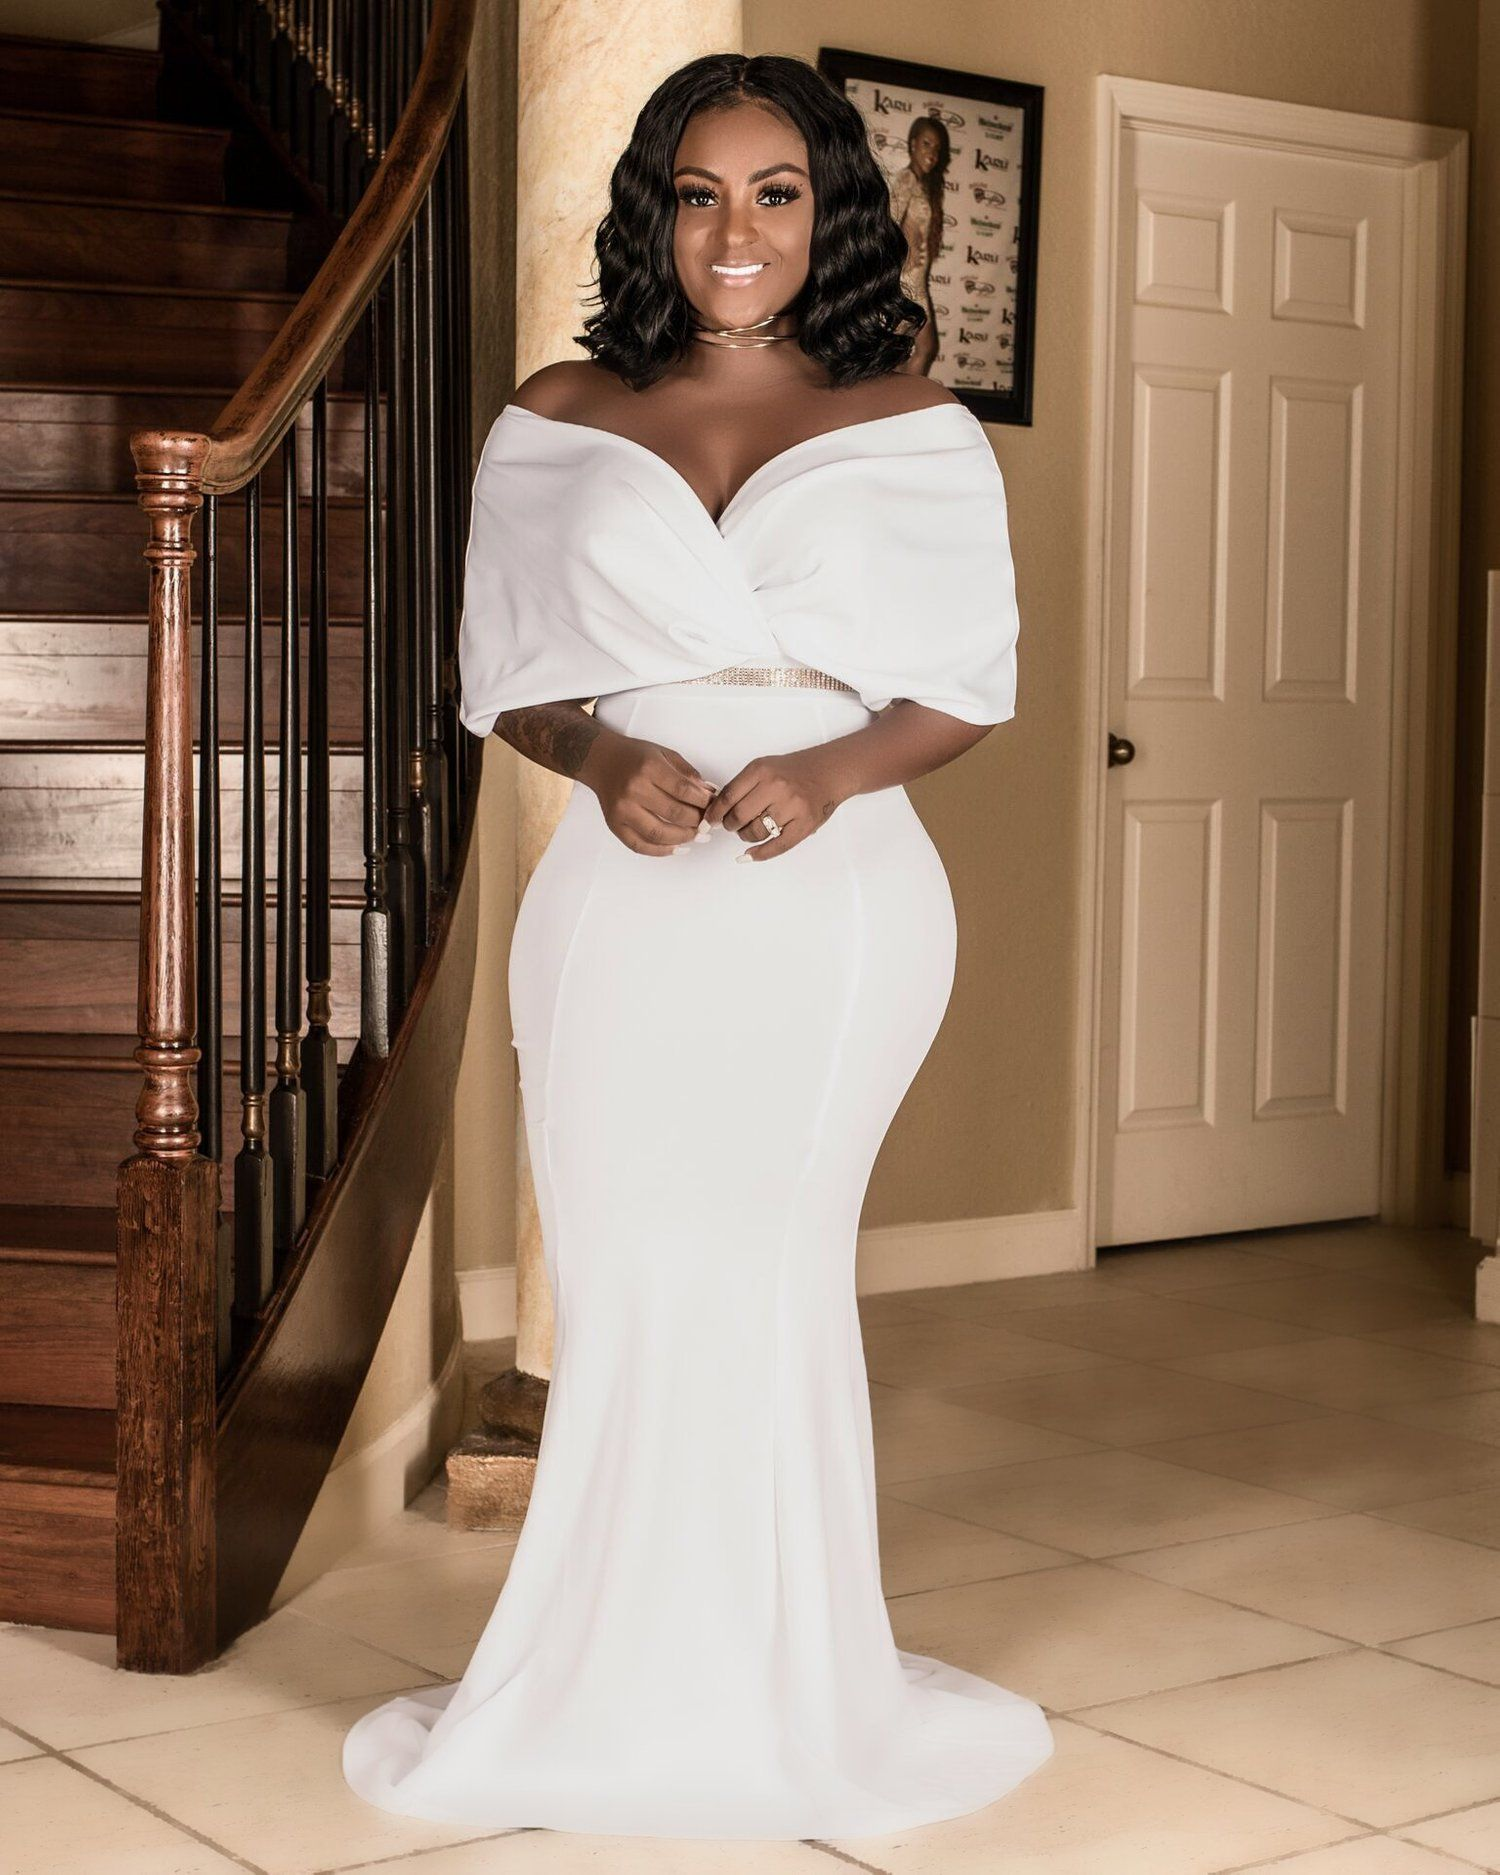 Glam Maxi Dress in 2020 Maxi dress wedding, Courthouse